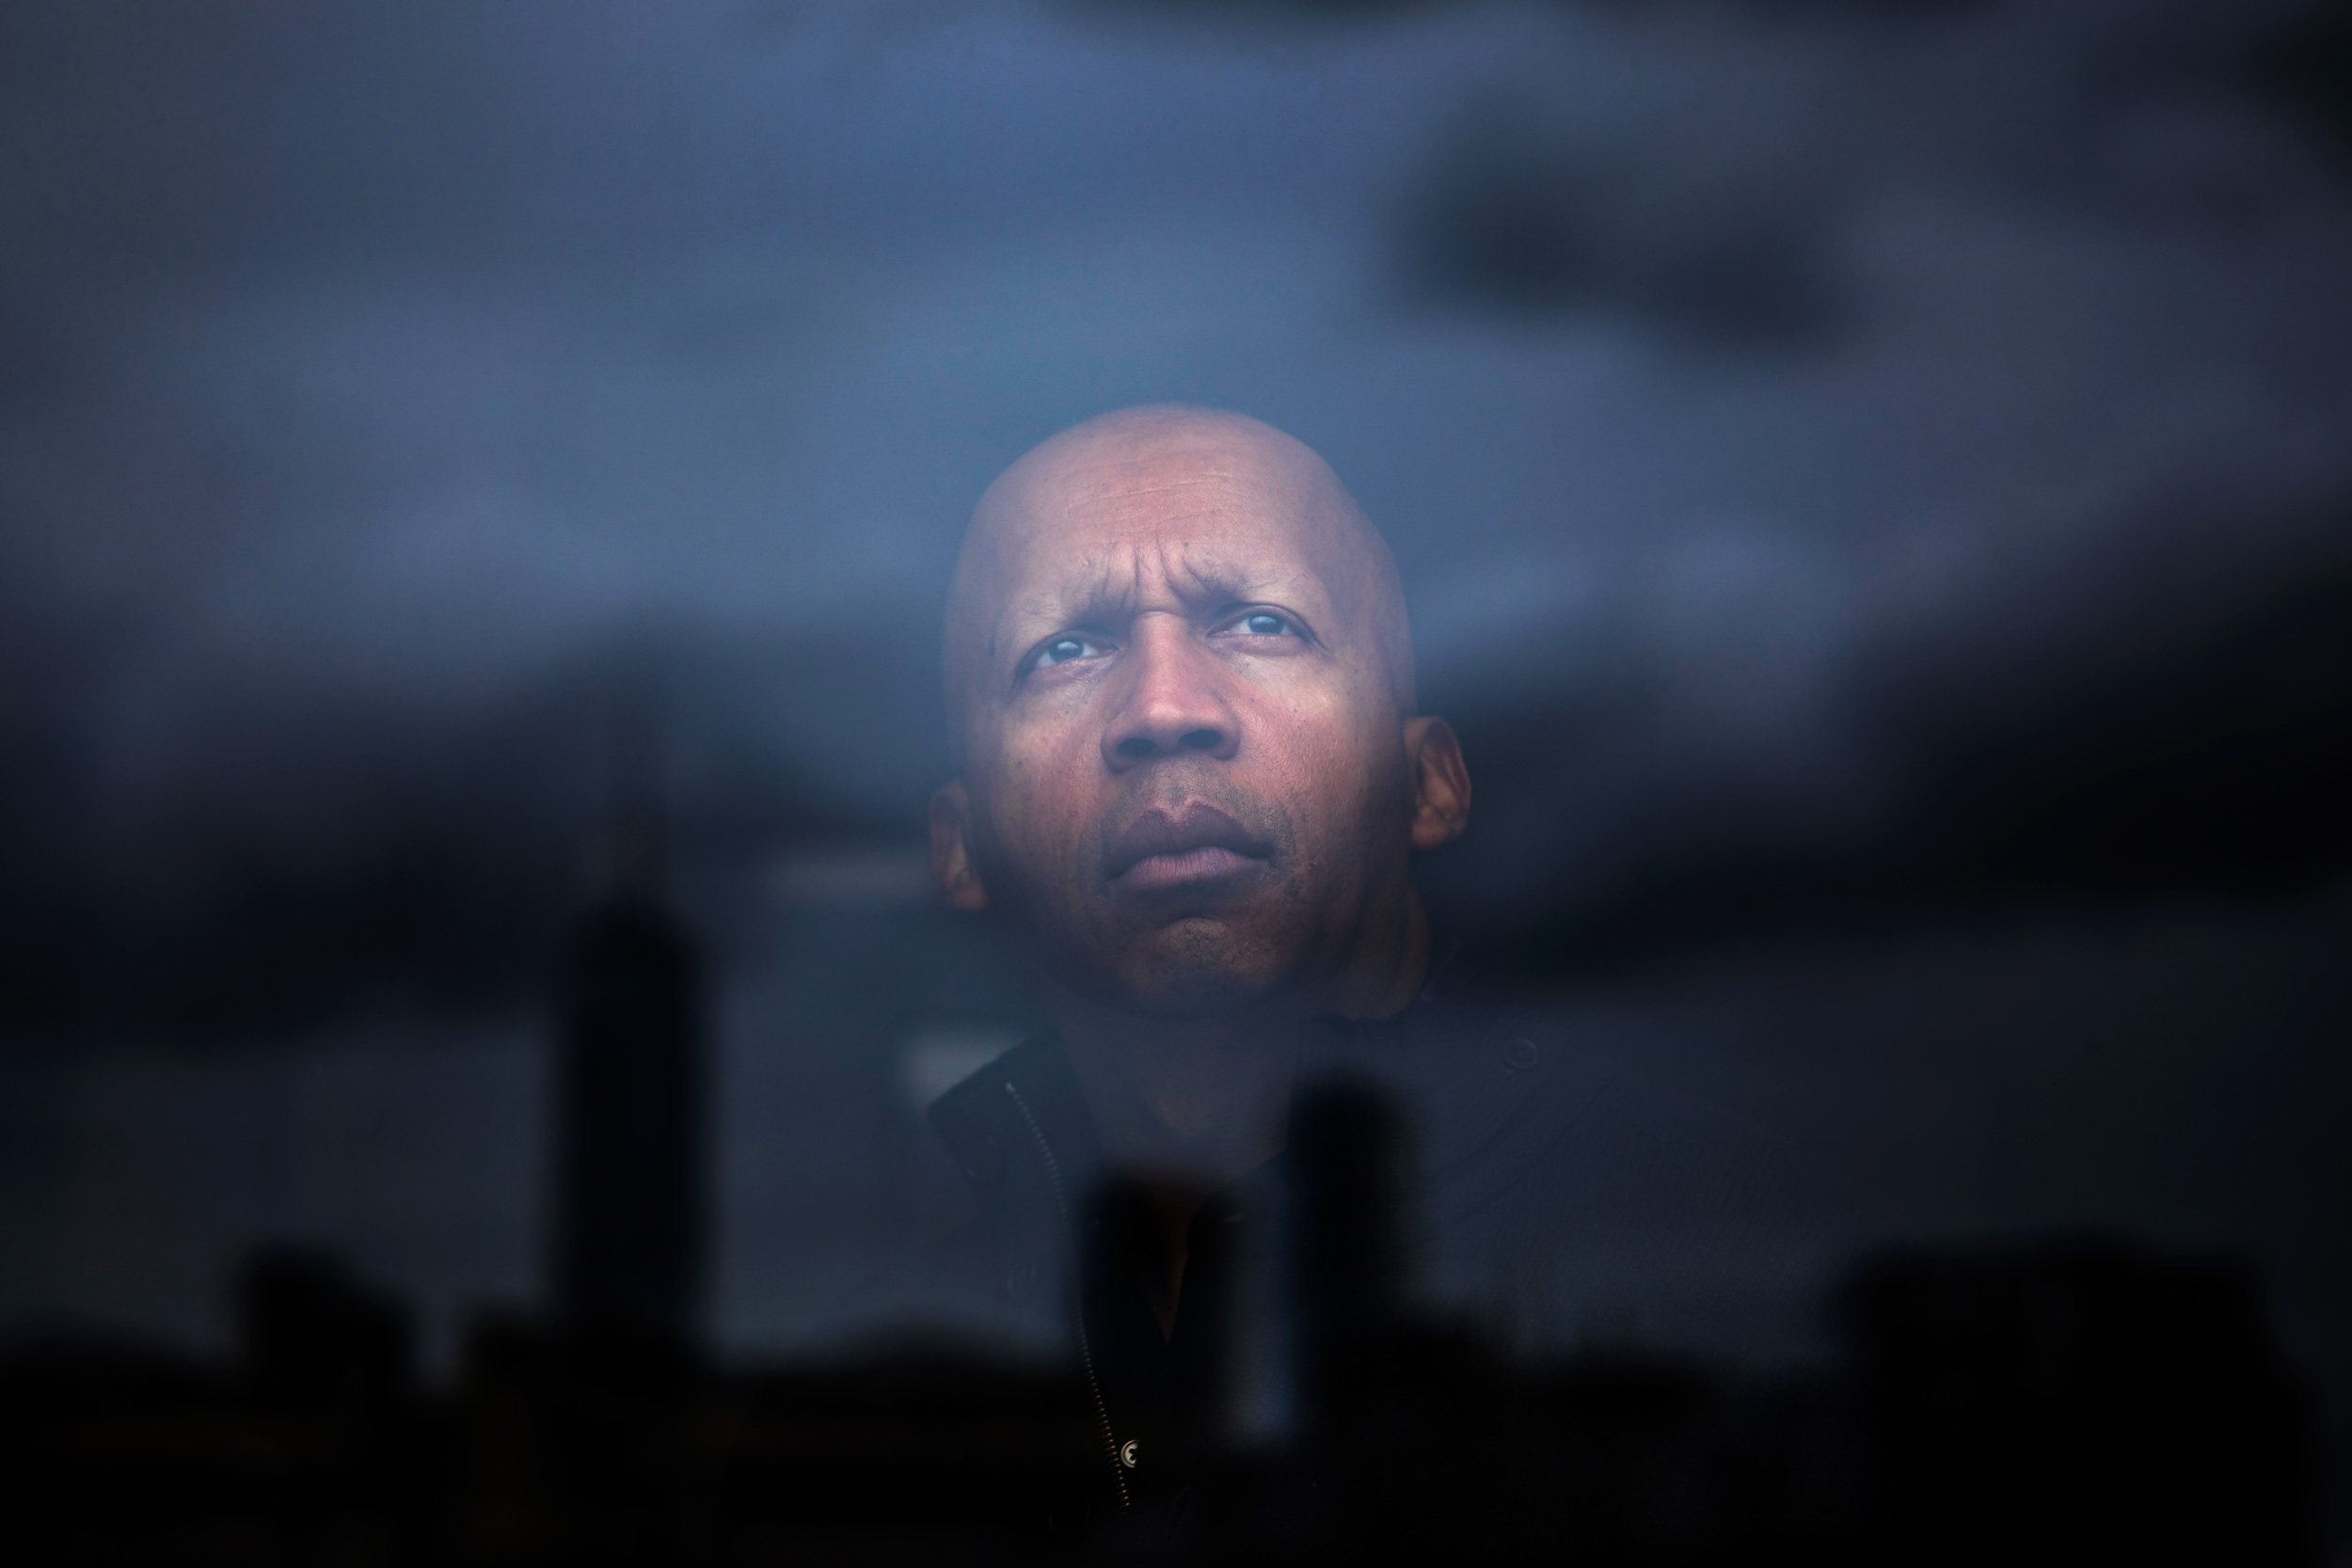 Portrait of Bryan Stevenson, founder and Executive Director of the Equal Justice Initiative in Montgomery, Alabama, at The NYU Law Furman Hall in Manhattan, New York. Stevenson is a widely acclaimed public interest lawyer who has dedicated his career to helping the poor, the incarcerated and the condemned.